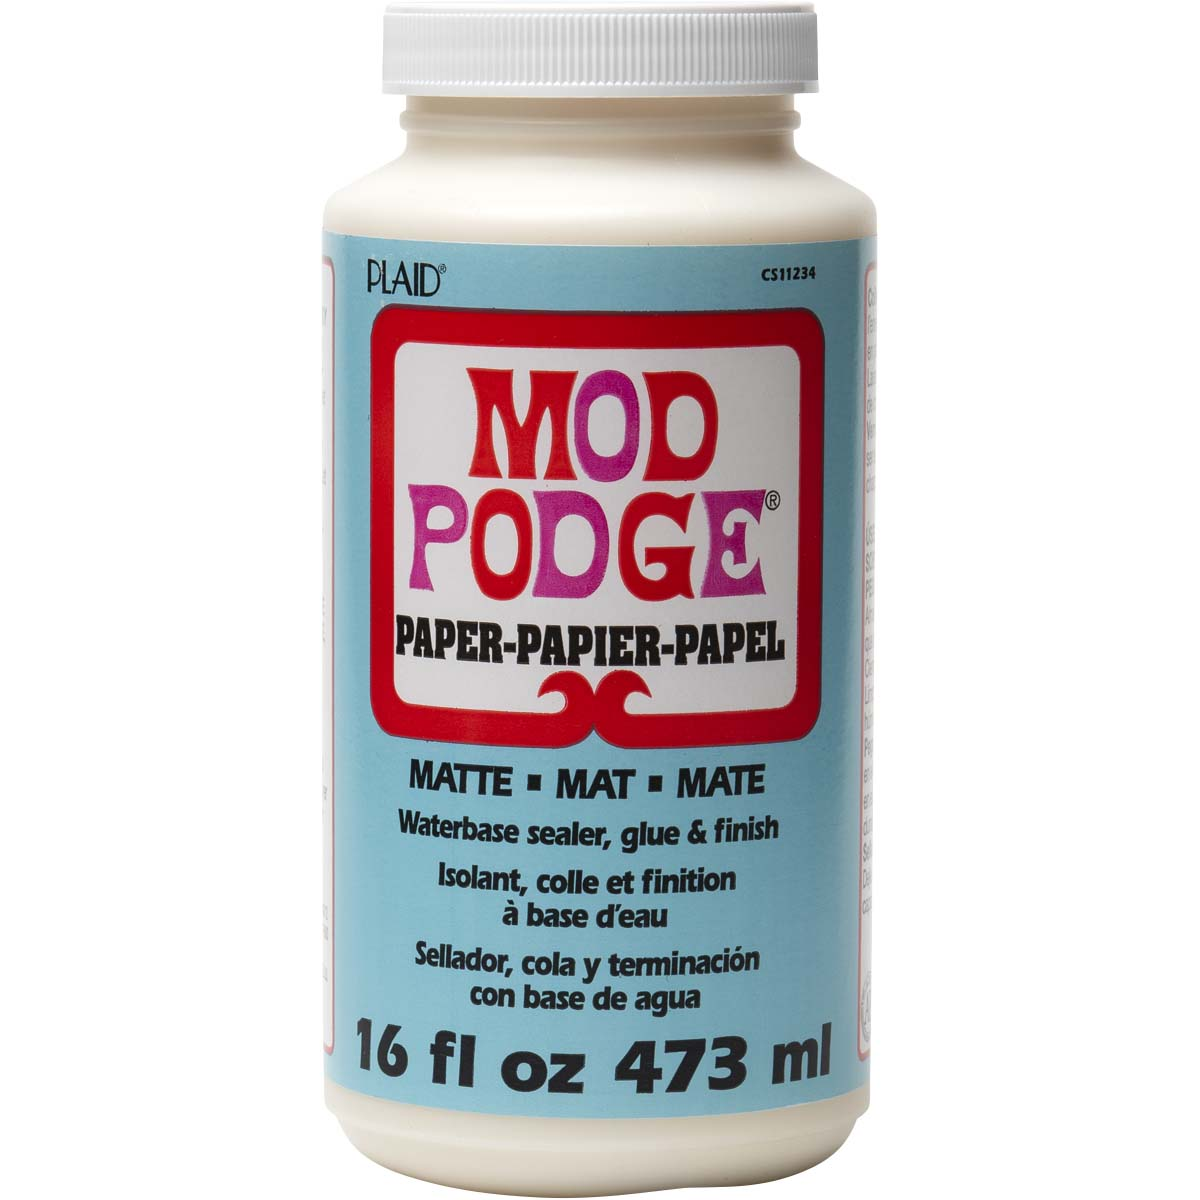 Mod Podge ® Paper - Matte, 16 oz. - CS11234